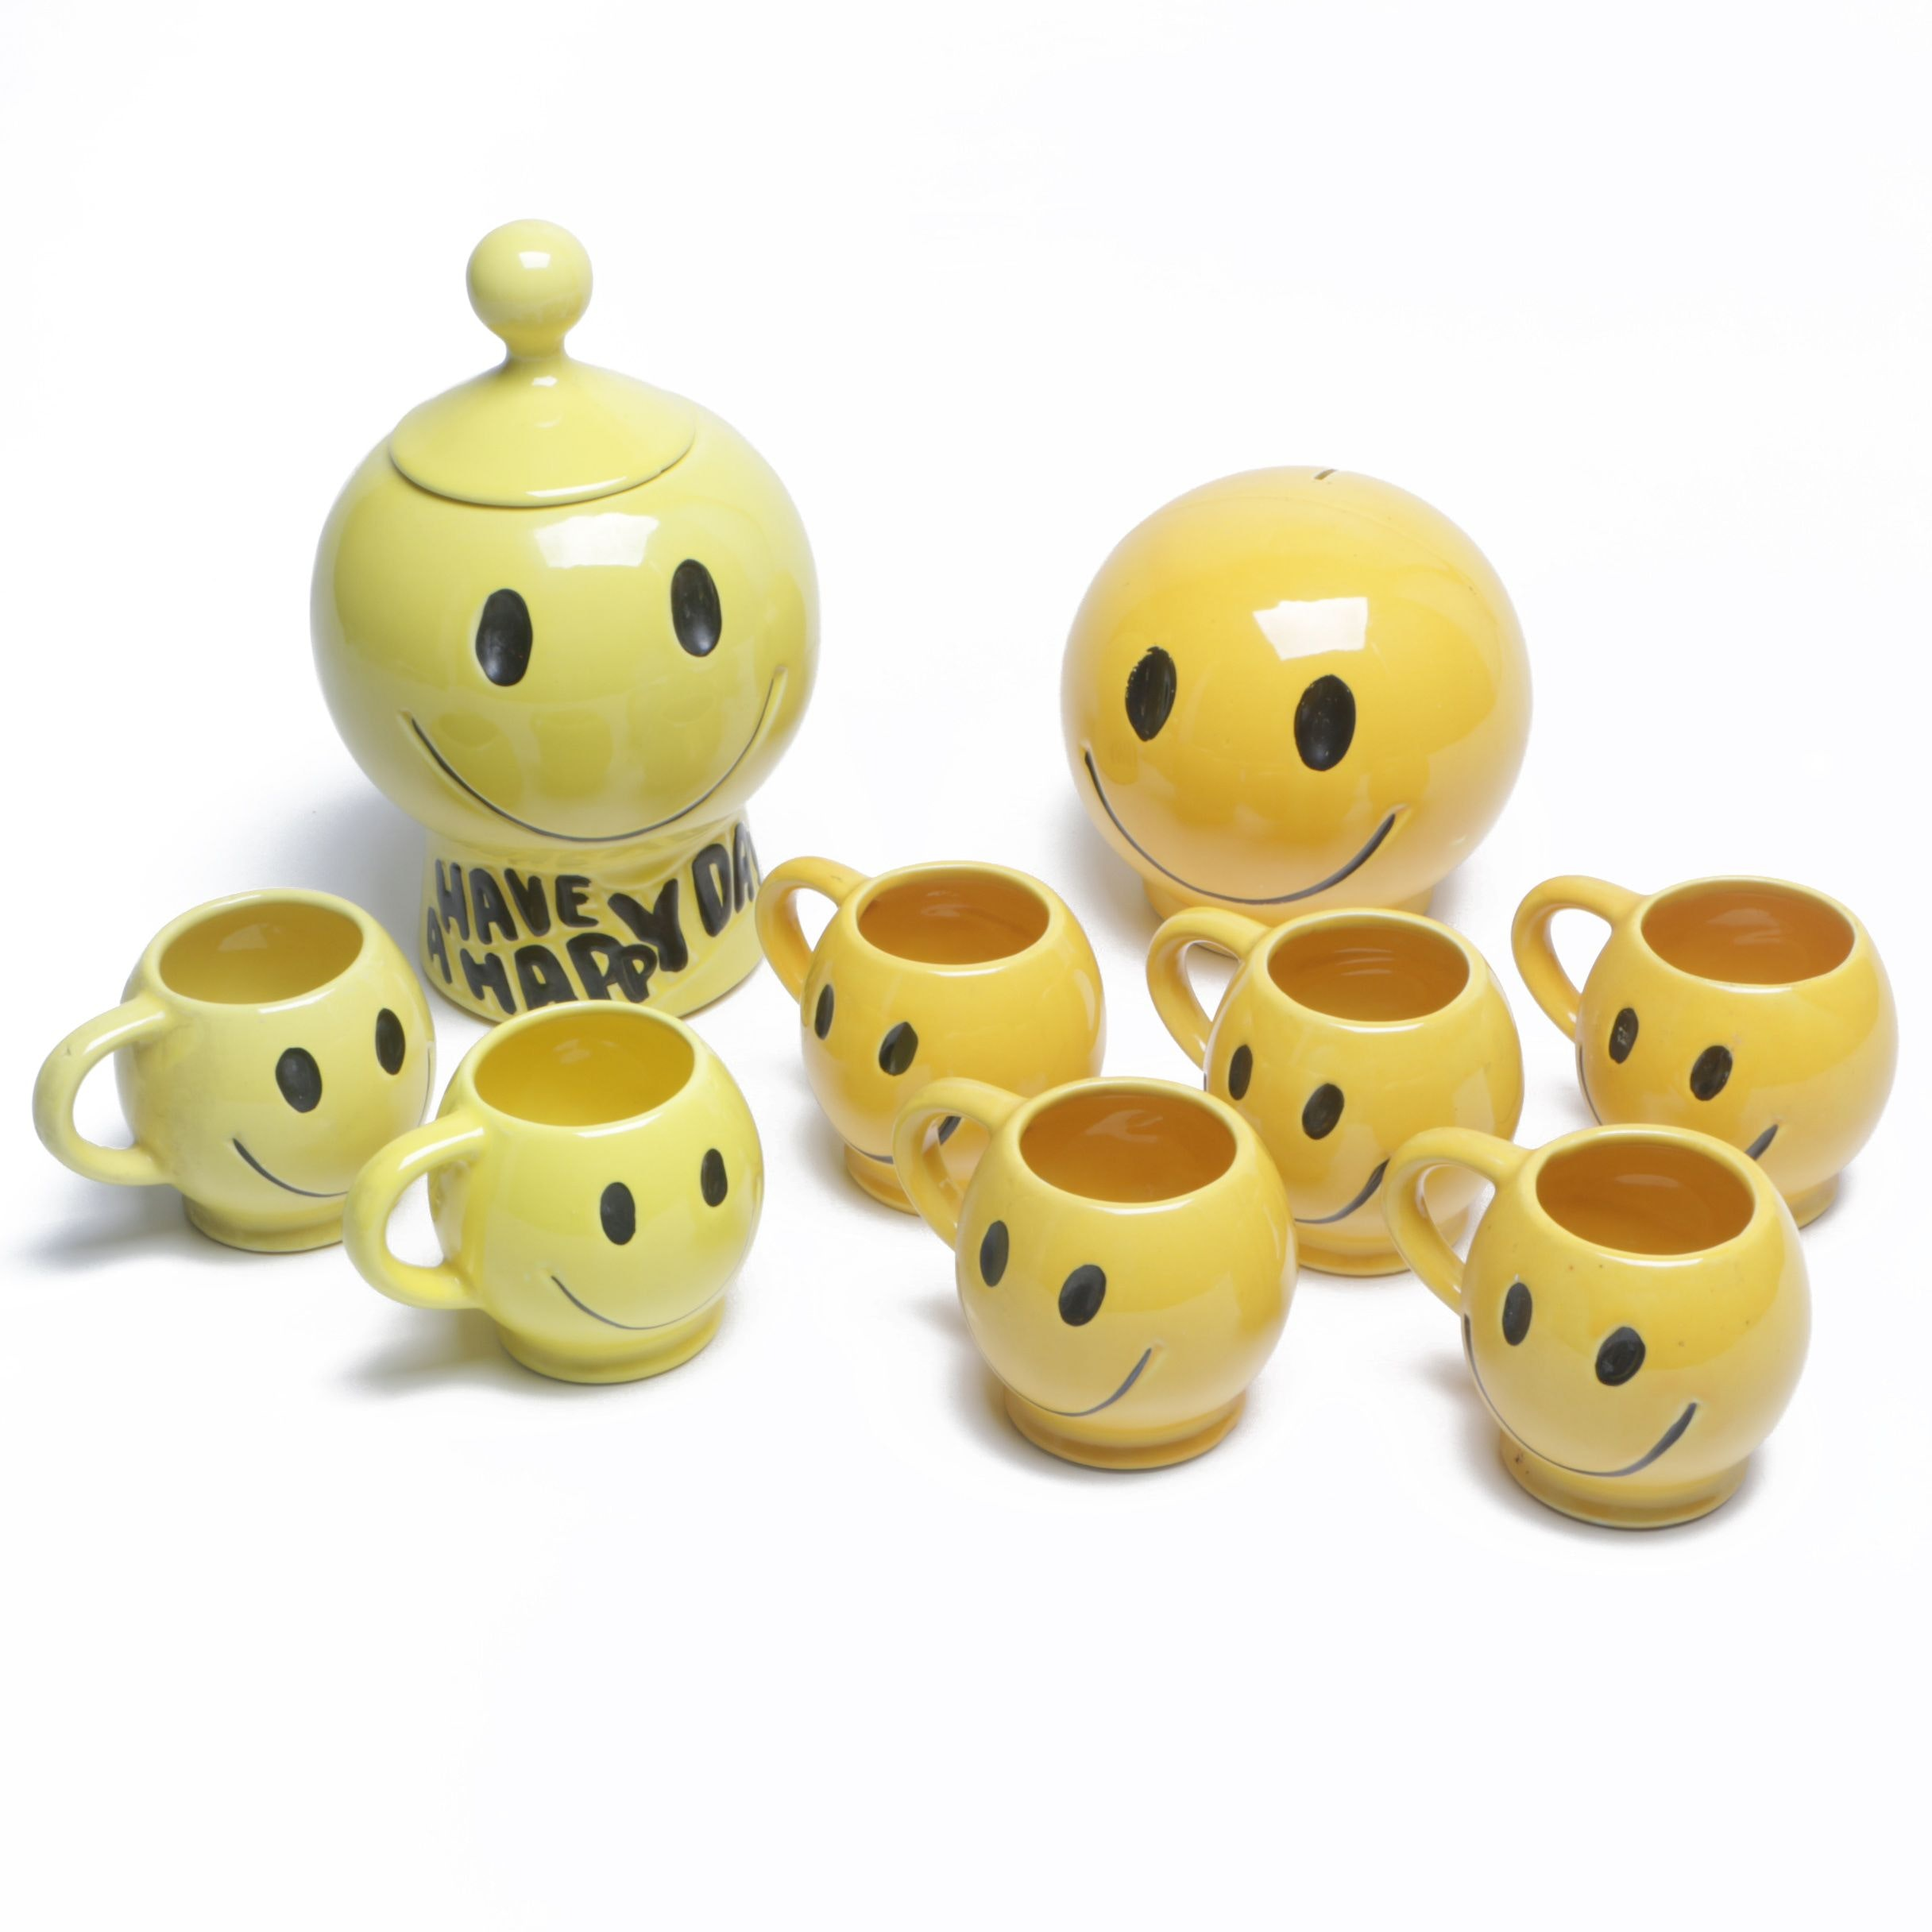 "1970s McCoy Pottery ""Have a Happy Day"" Smiley Face Mugs, Cookie Jar, and Bank"